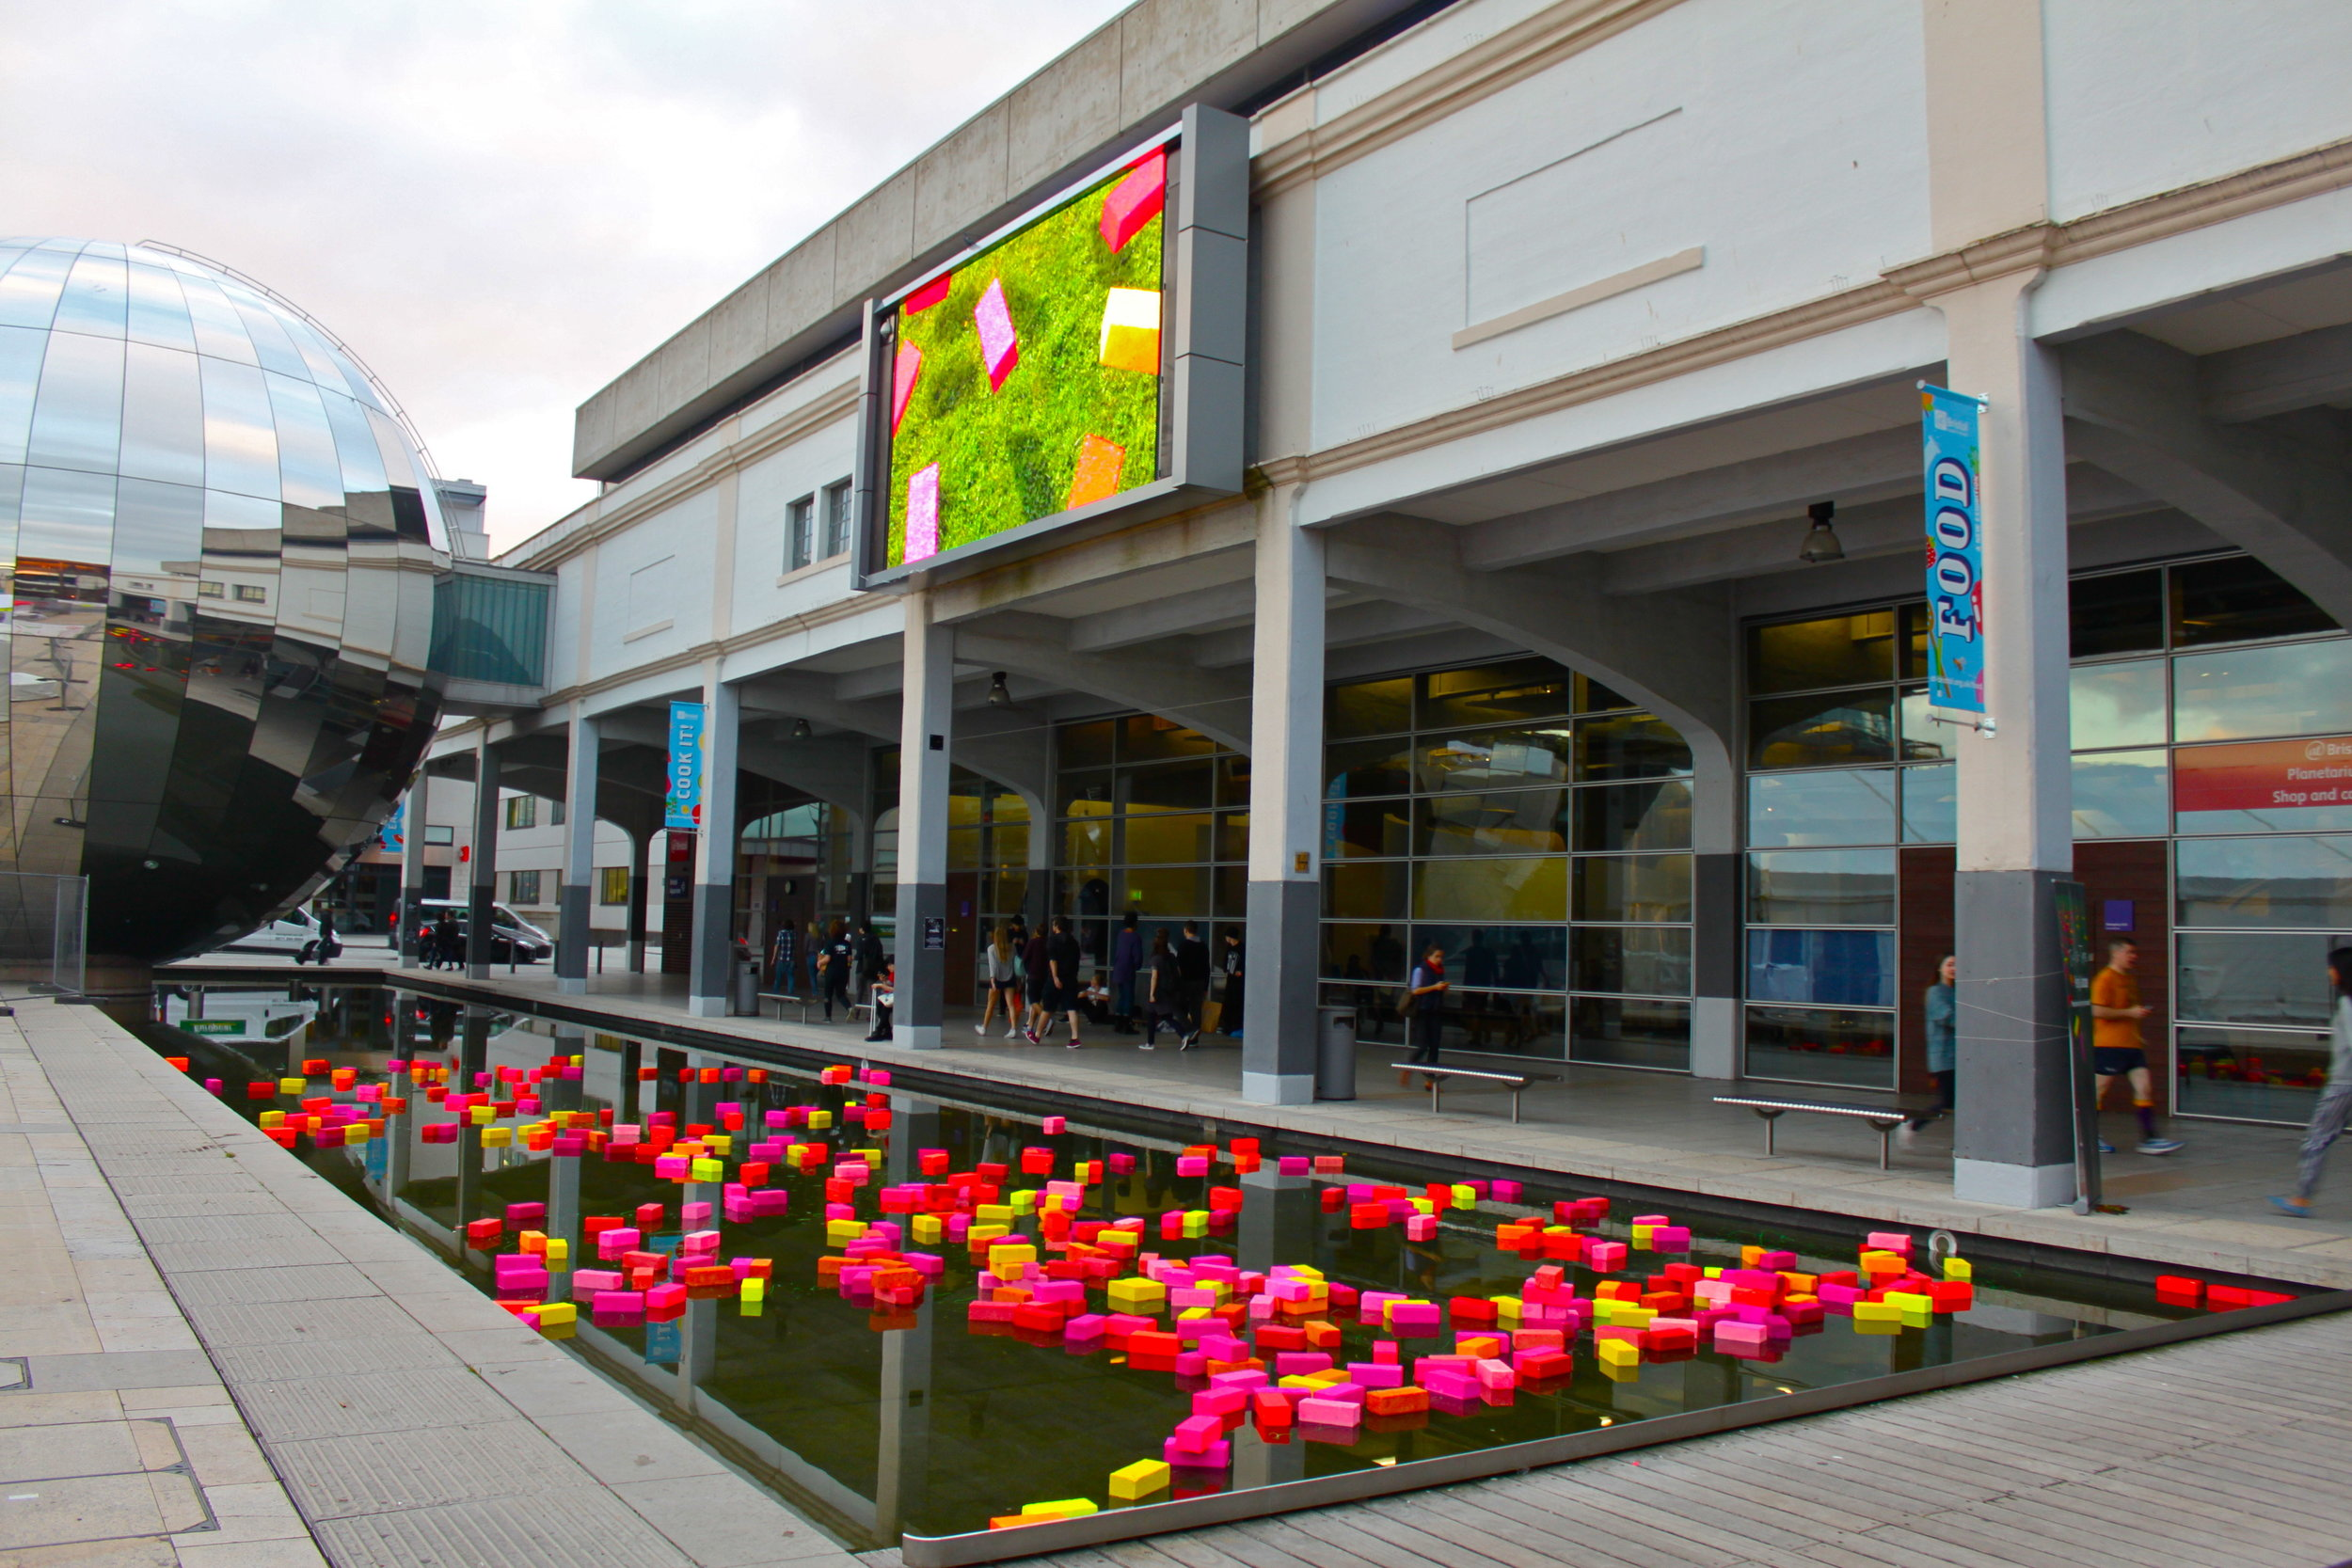 Ticker-Tape: Waterscape - Installation and PerformanceGovier collaborated with AHRC Power and the Water project team member Dr Jill Payne in the creation of a large-scale public art installation in the water spaces of Bristol's Millennium Square.The installation, Ticker-Tape: Waterscape, formed part of the Bristol Bright Night event hosted by the At-Bristol Science Centre and was designed to challenge viewers' perceptions of energy production in the landscape. A floating sculpture of 500 fluorescent bricks accompanied by a 5-minute visual soundscape broadcast on the BBC Big Screen overhead.Bristol Bright Night is part of the annual 'Researchers' Night' programme, an EU Commission-funded project that aims to engage publics across Europe in celebrating the latest and most stimulating research at a local and international level.AT-Bristol Science Centre.26.9.14.